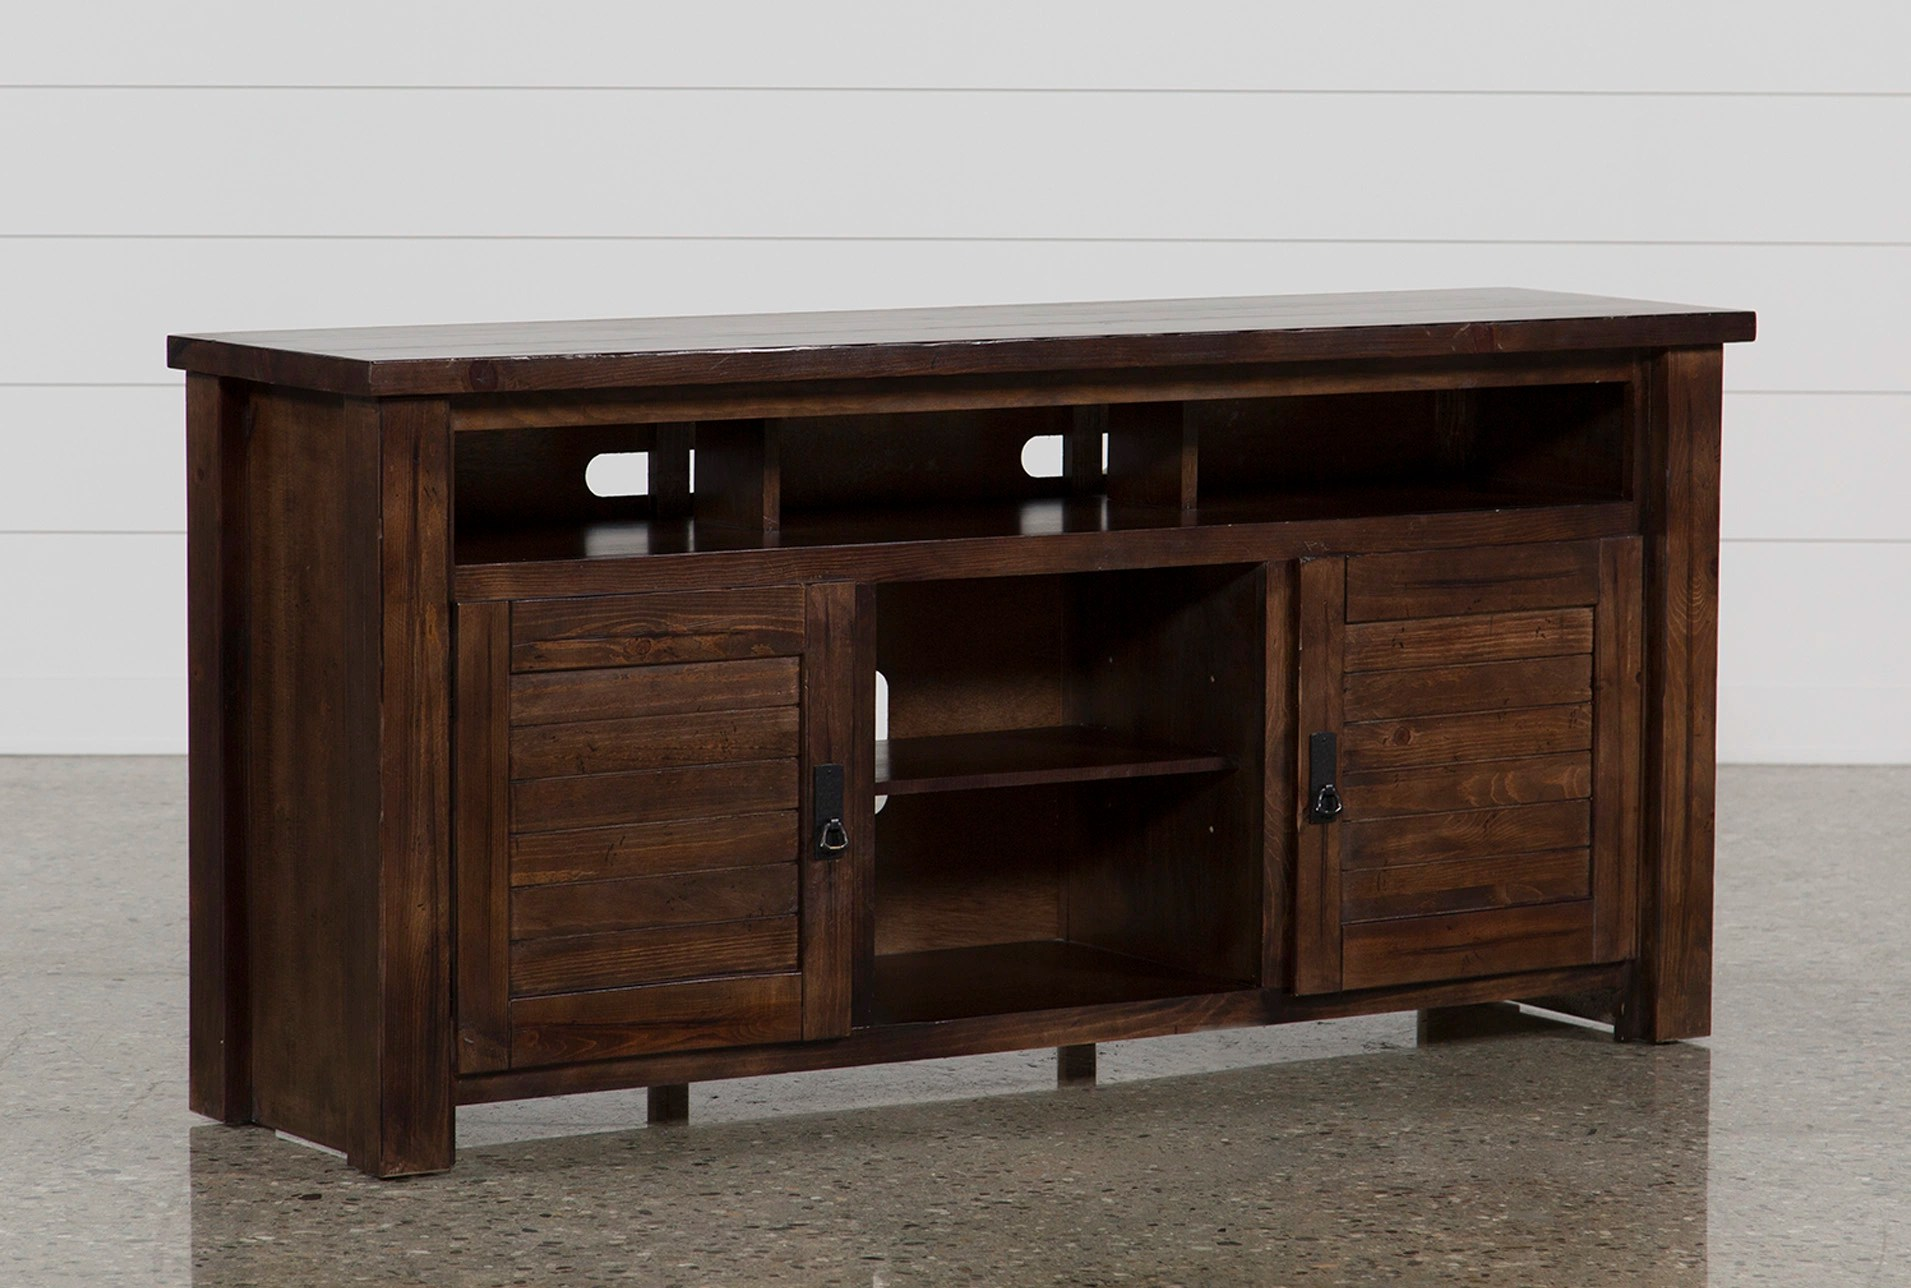 Langes Sideboard Sideboard 3 Meter Quick View Sideboards With Sideboard 3 Meter